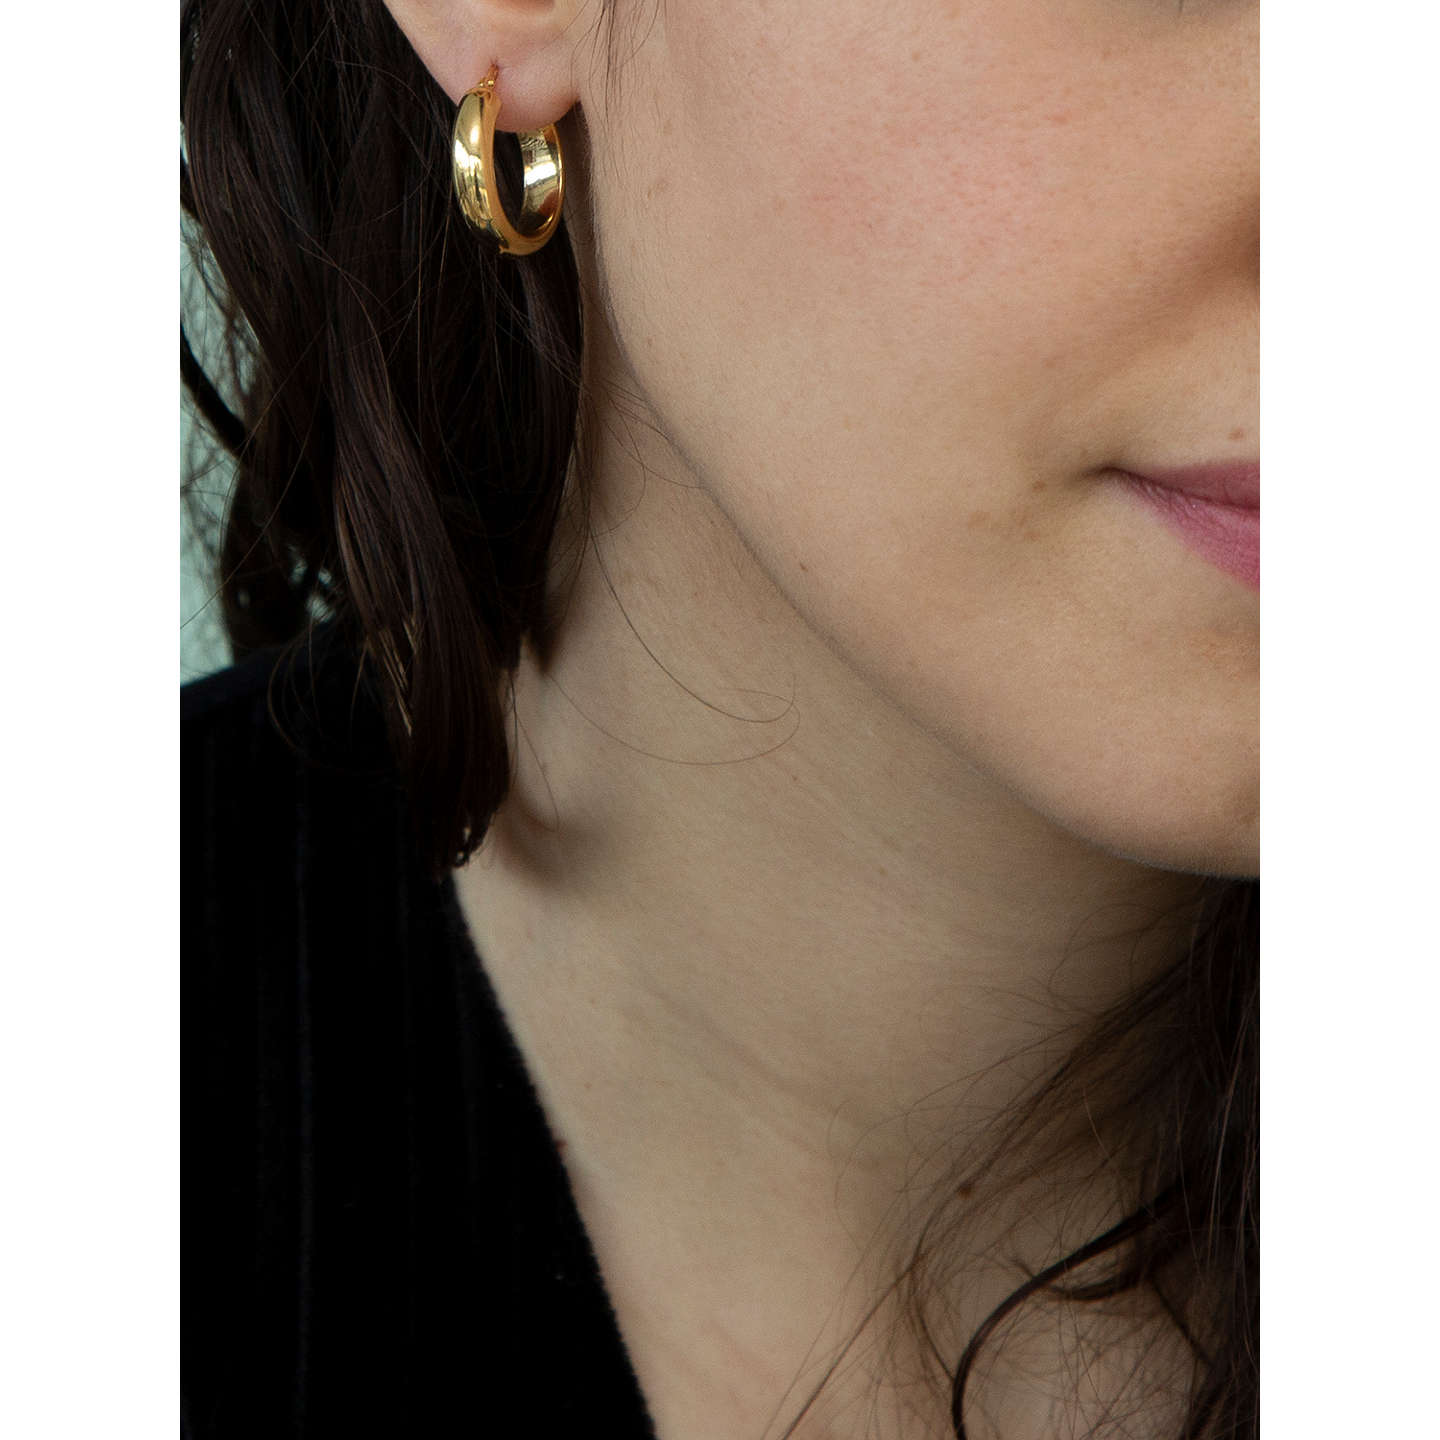 Ibb 9ct Yellow Gold Large Creole Hoop Earrings Online At Johnlewis